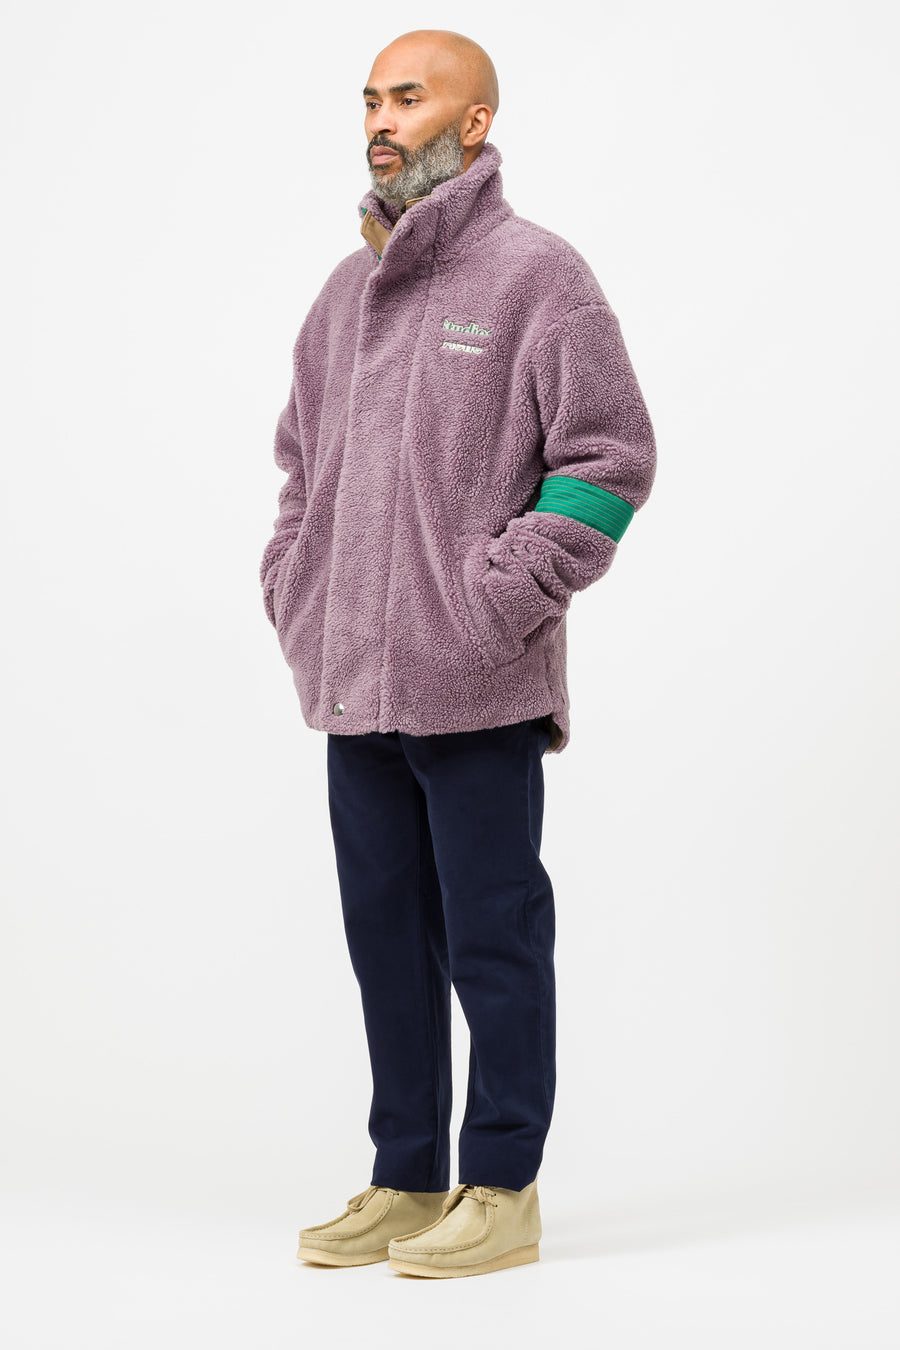 Acne Studios Orsino Teddy in Lavender Purple - Notre